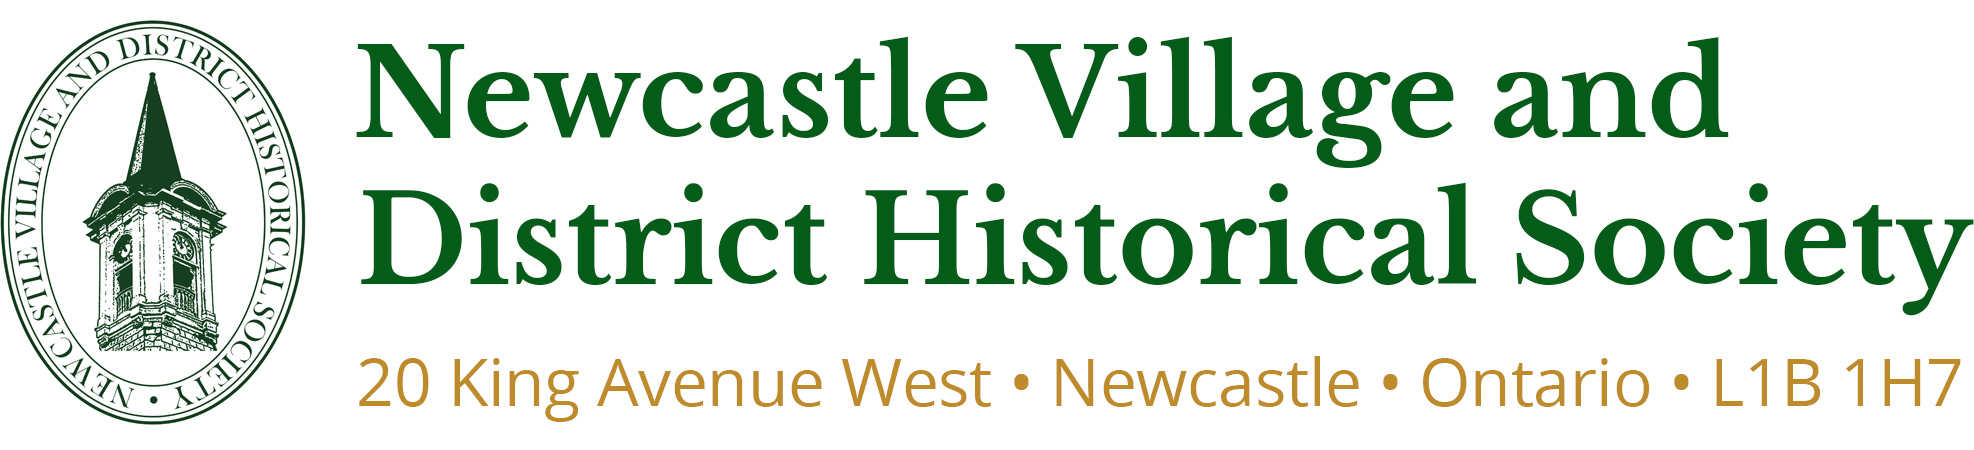 Newcastle Village and District Historical Society header image